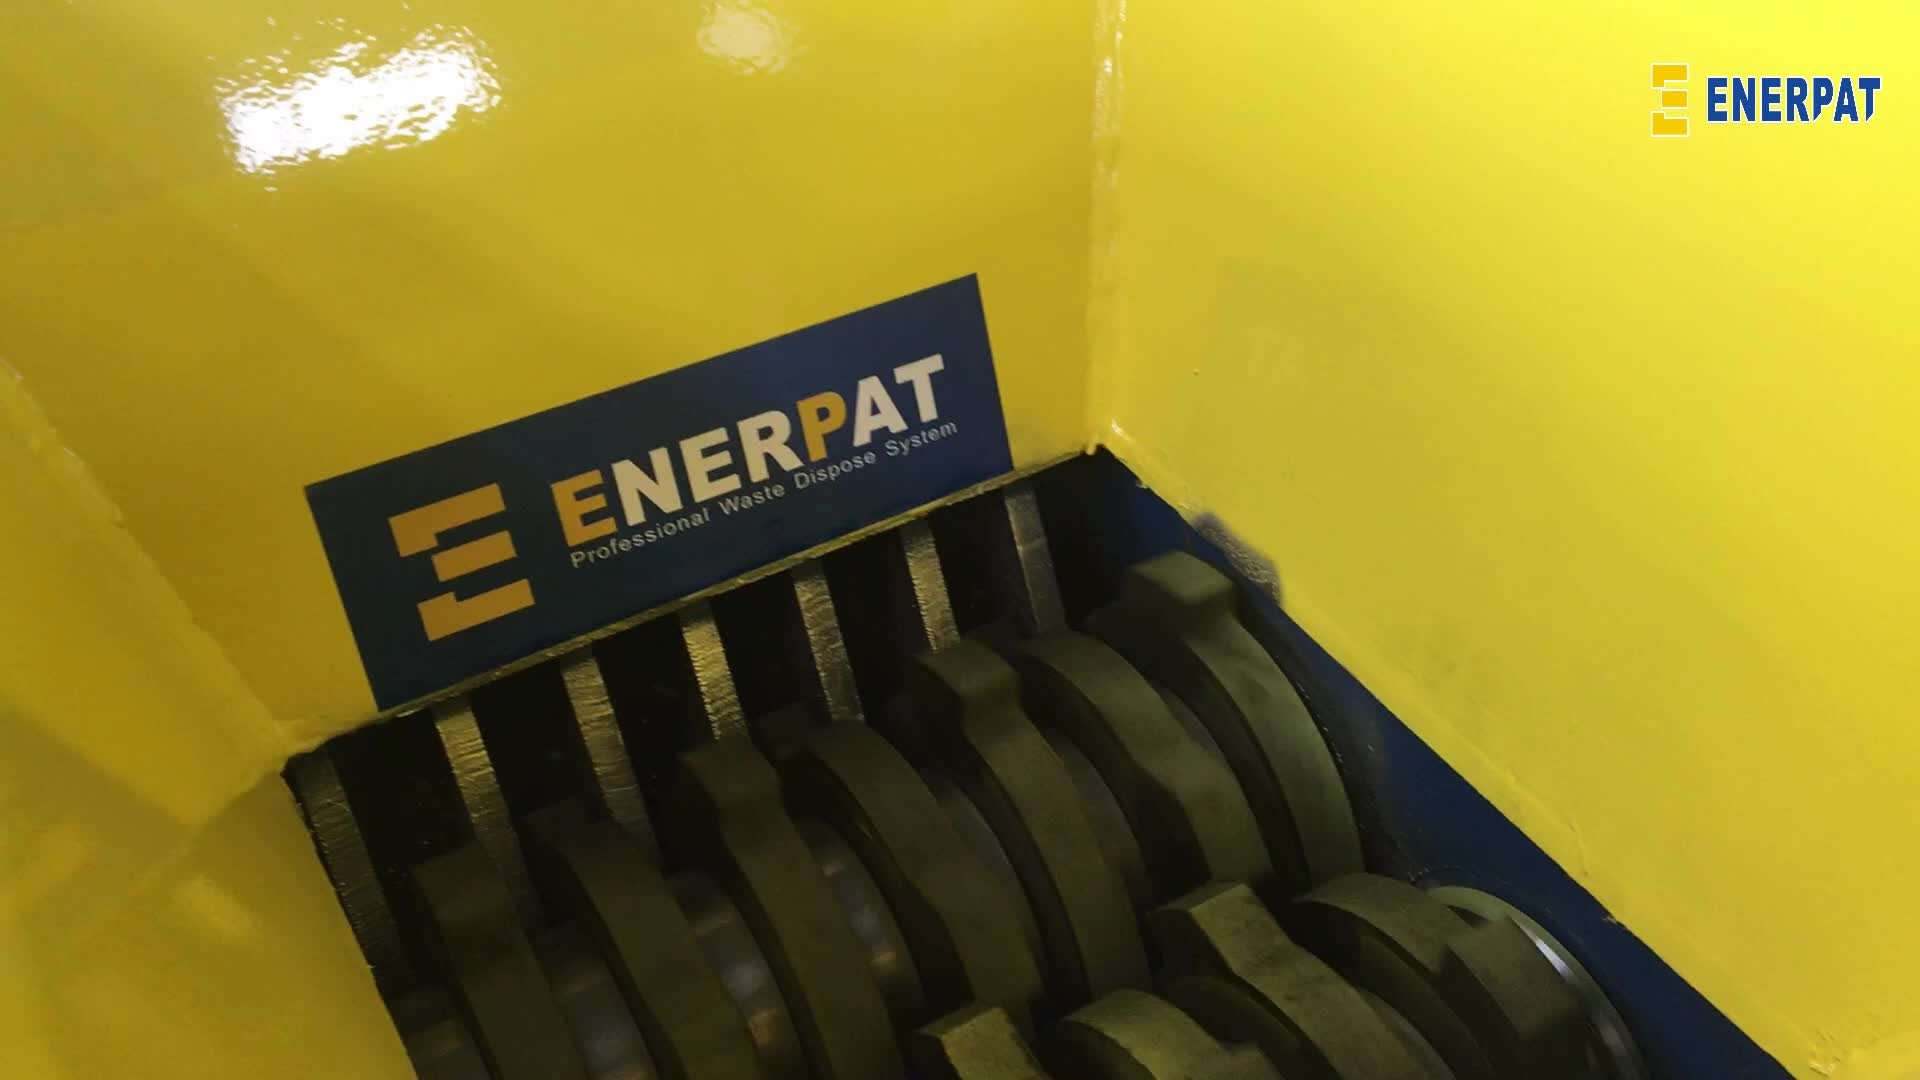 Enerpat machines shredder bladen